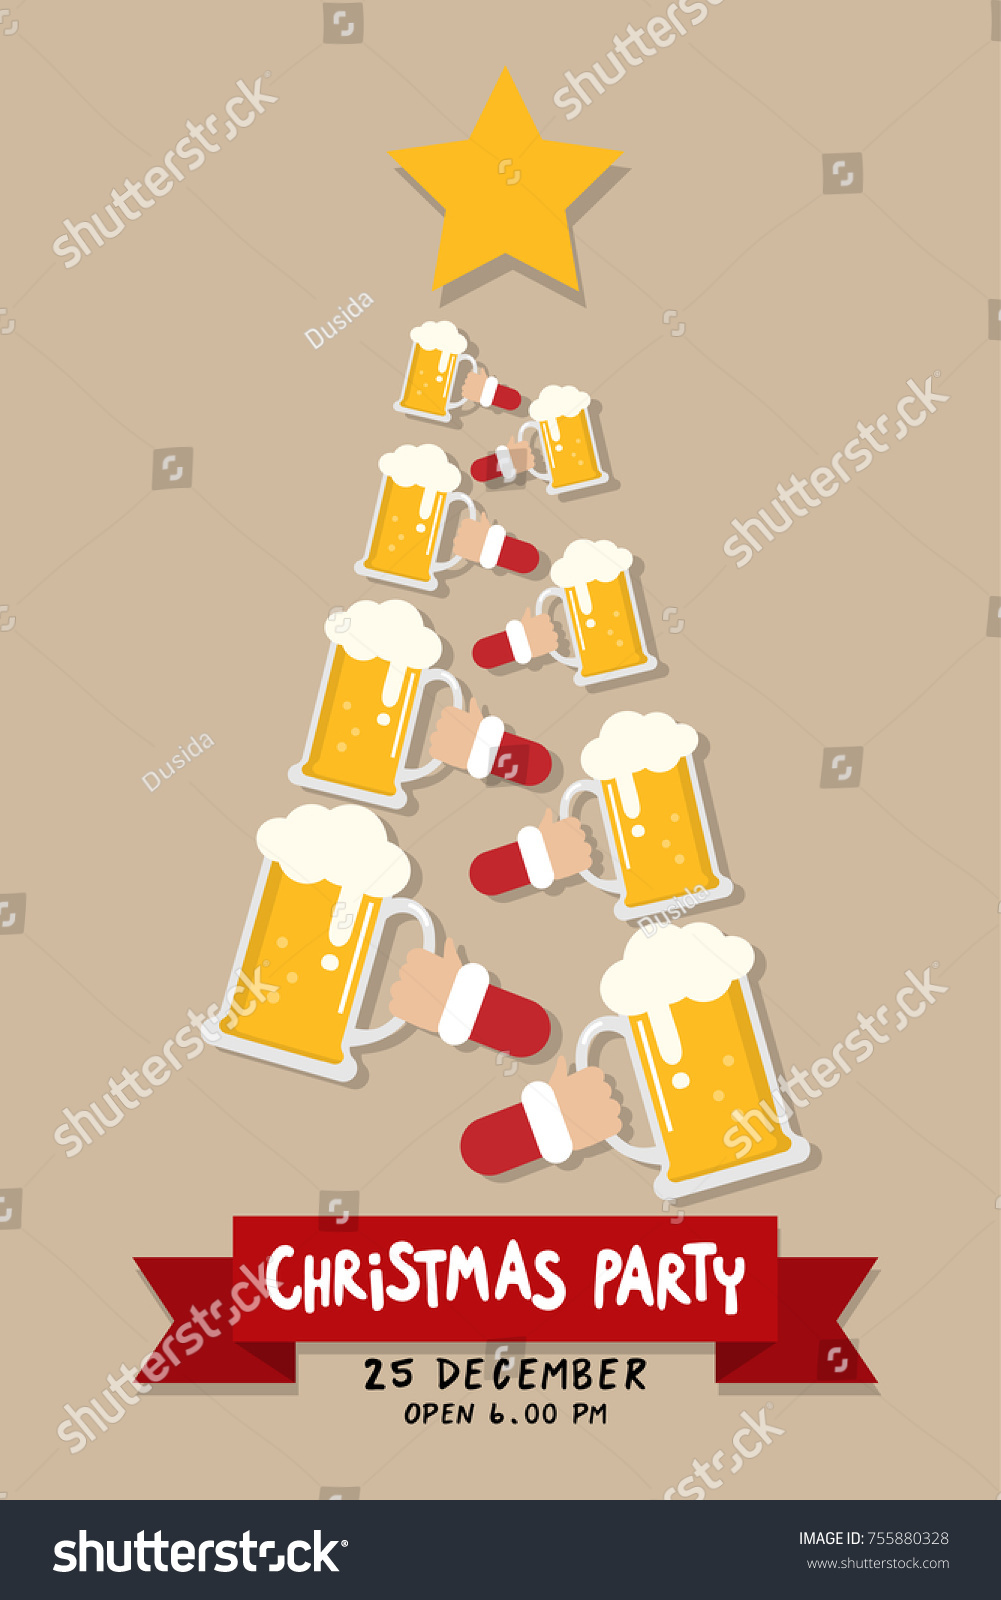 Christmas Party Invitation Card Hipster Beer Stock Vector 755880328 ...